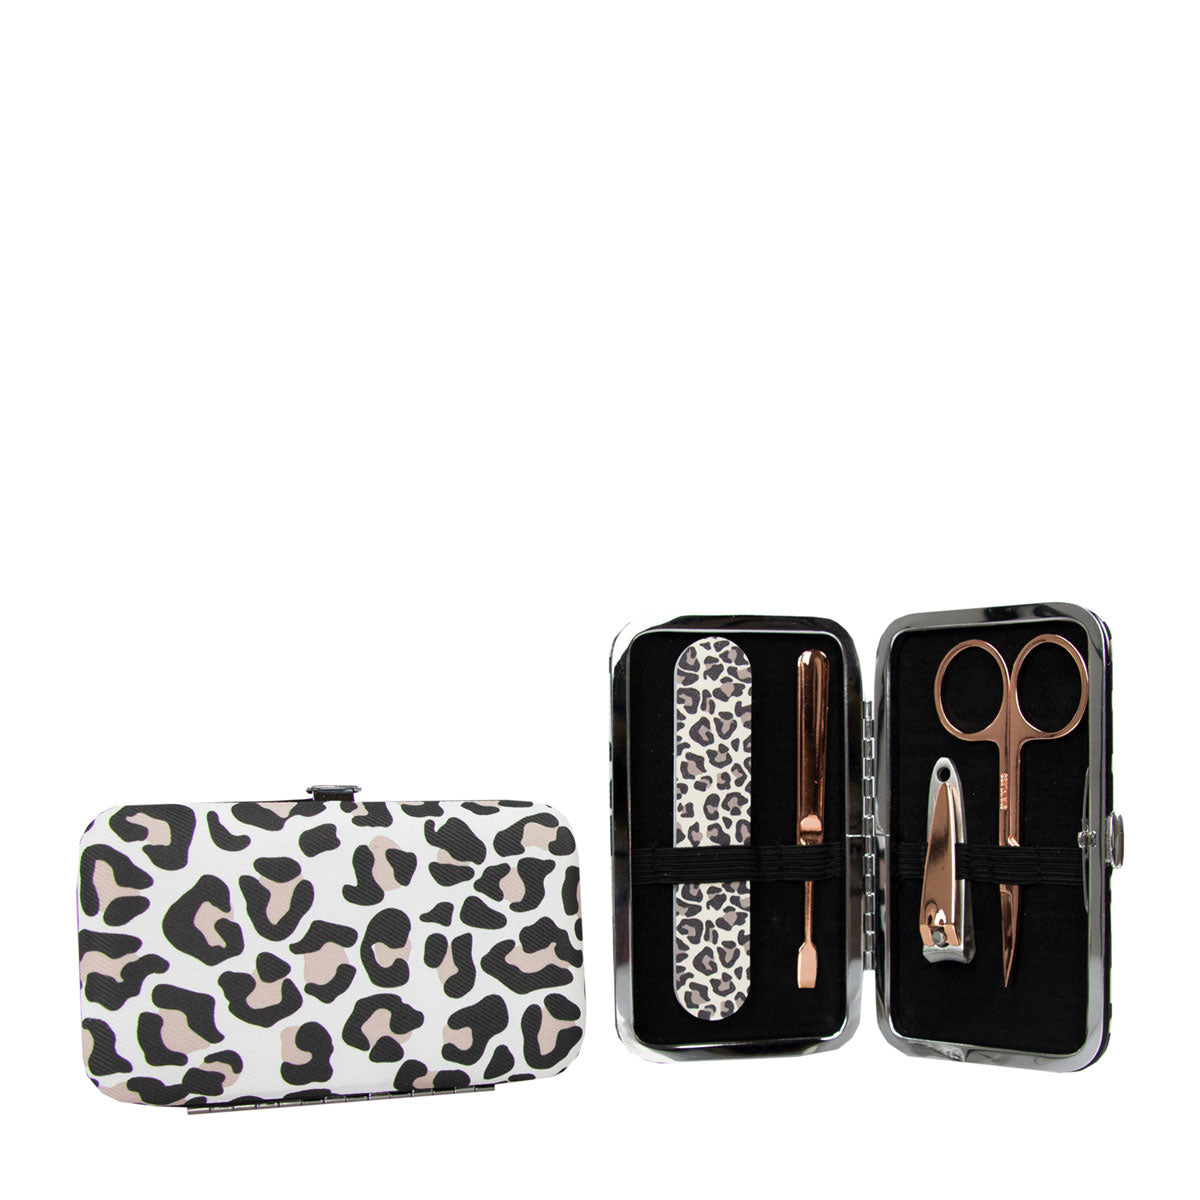 The Vintage Cosmetic Company Manicure Purse Leopard Print